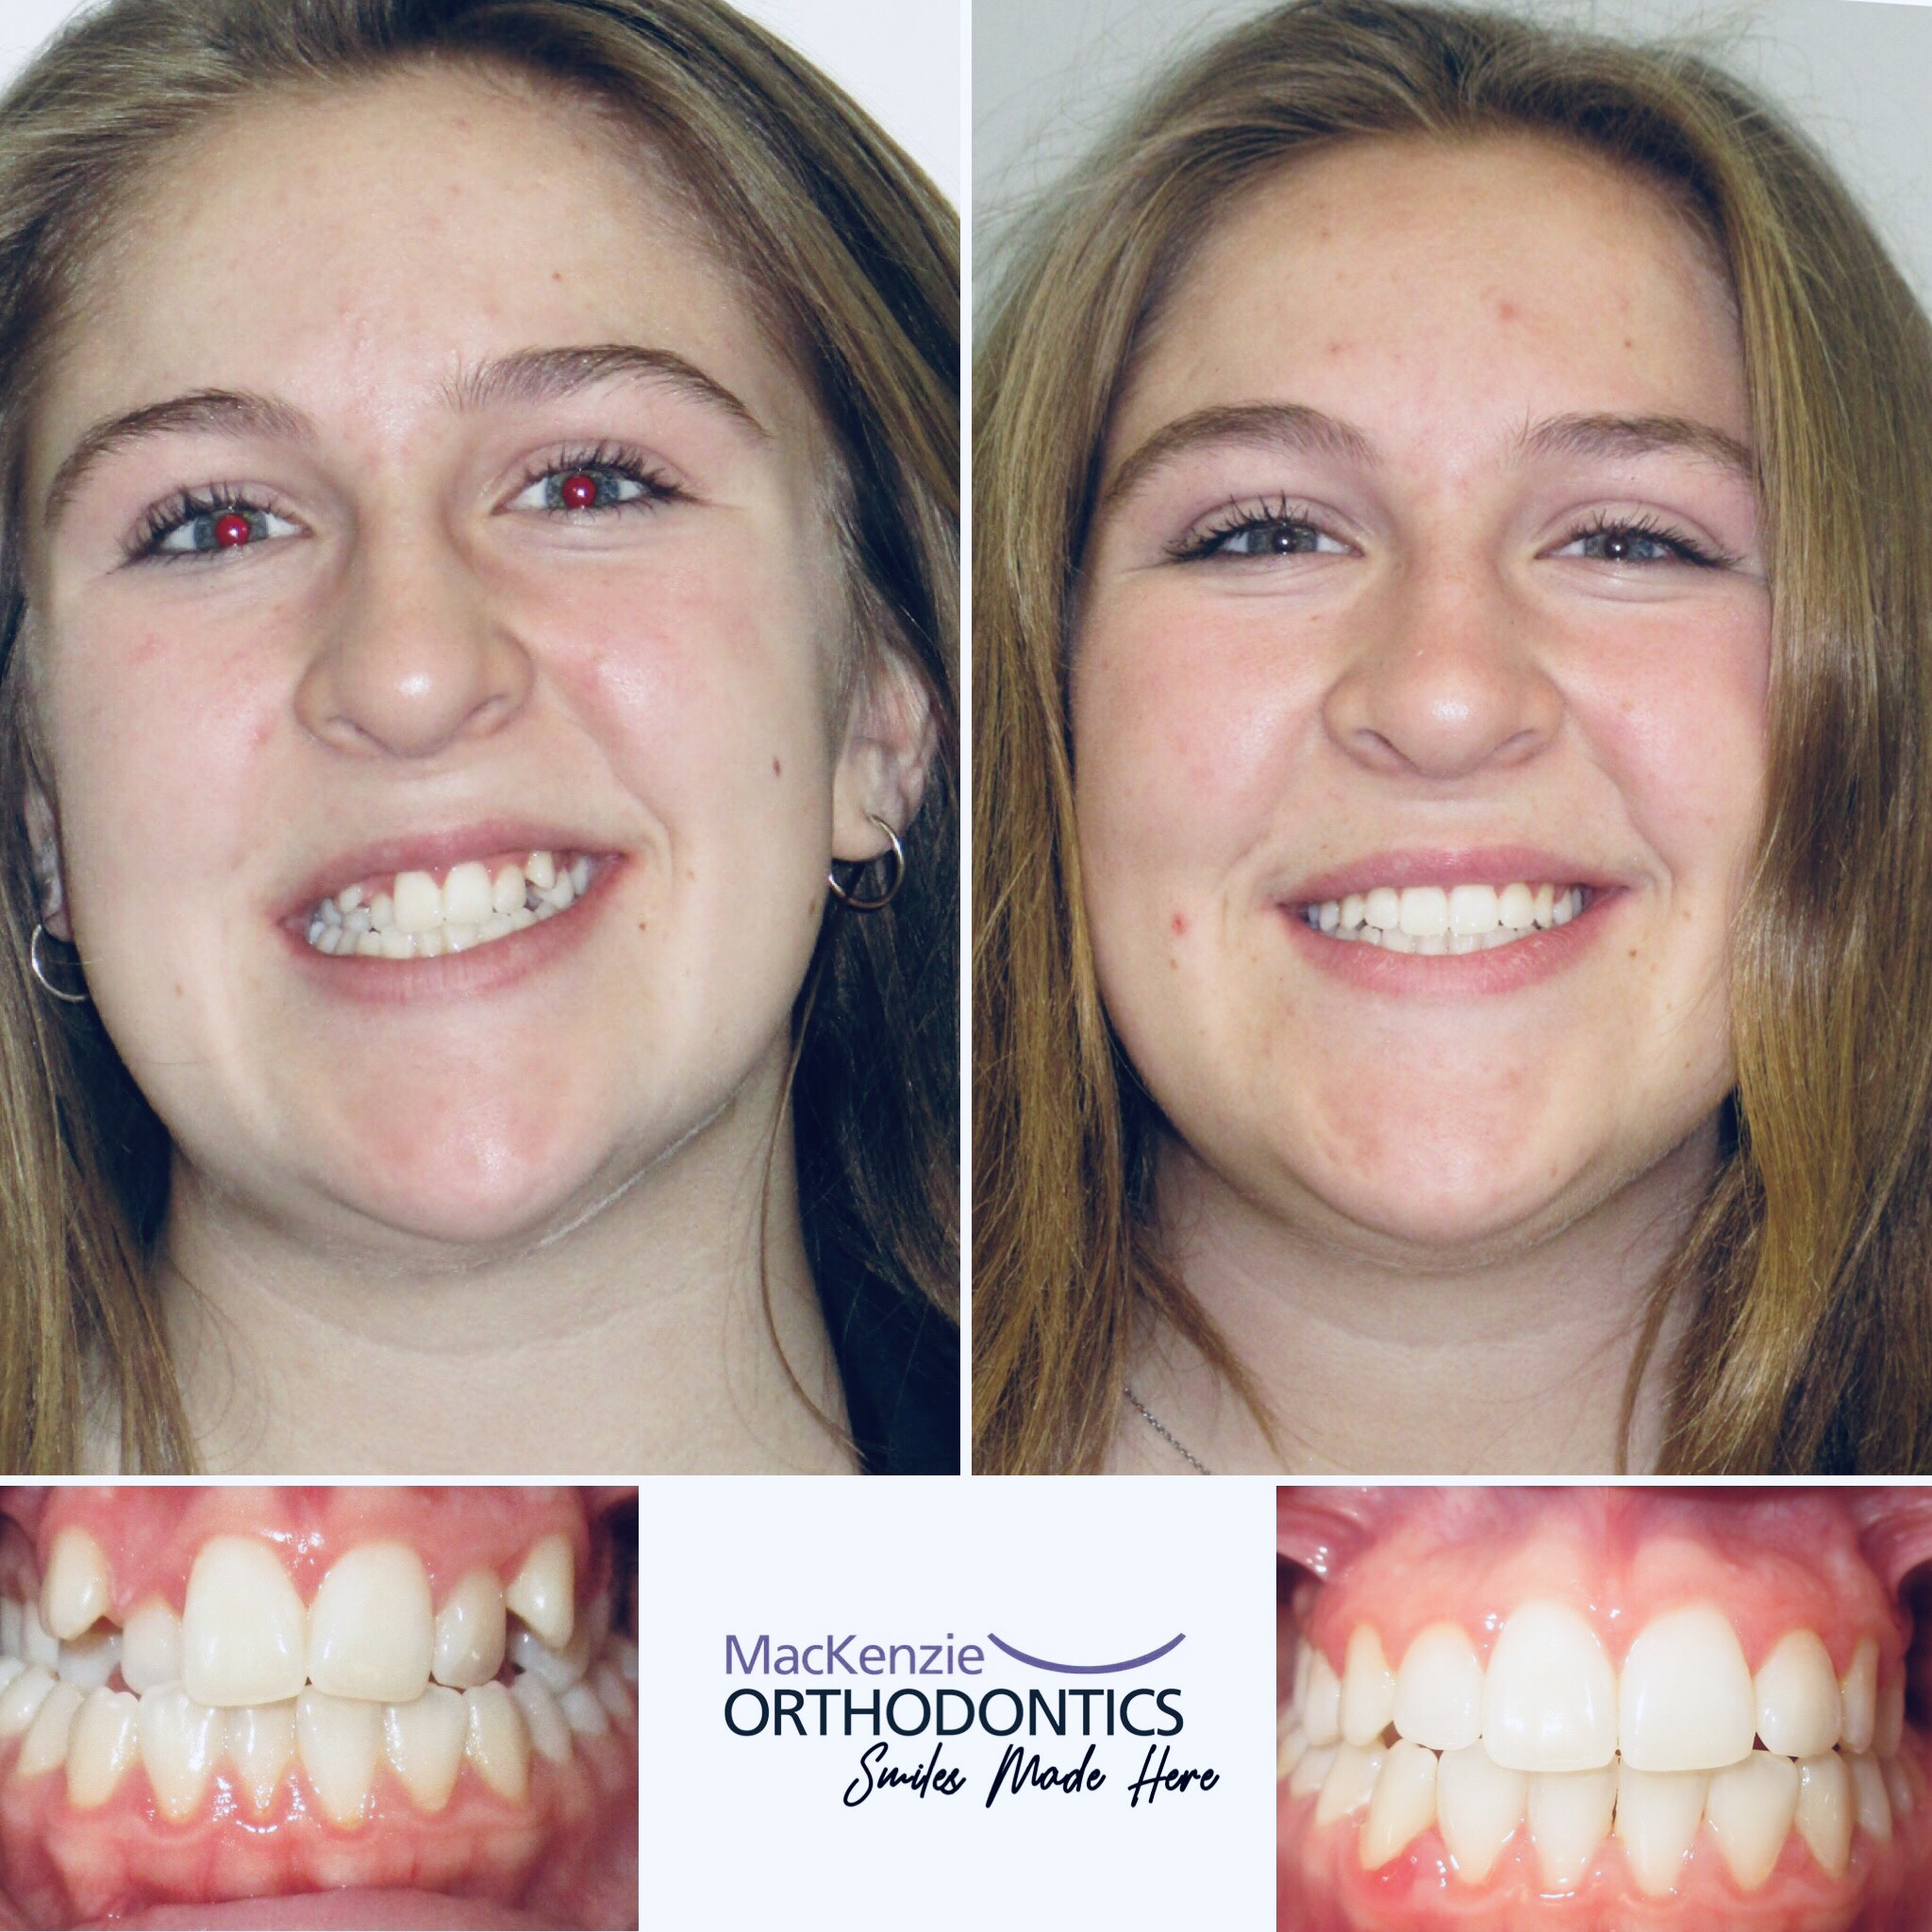 Braces for 17 months